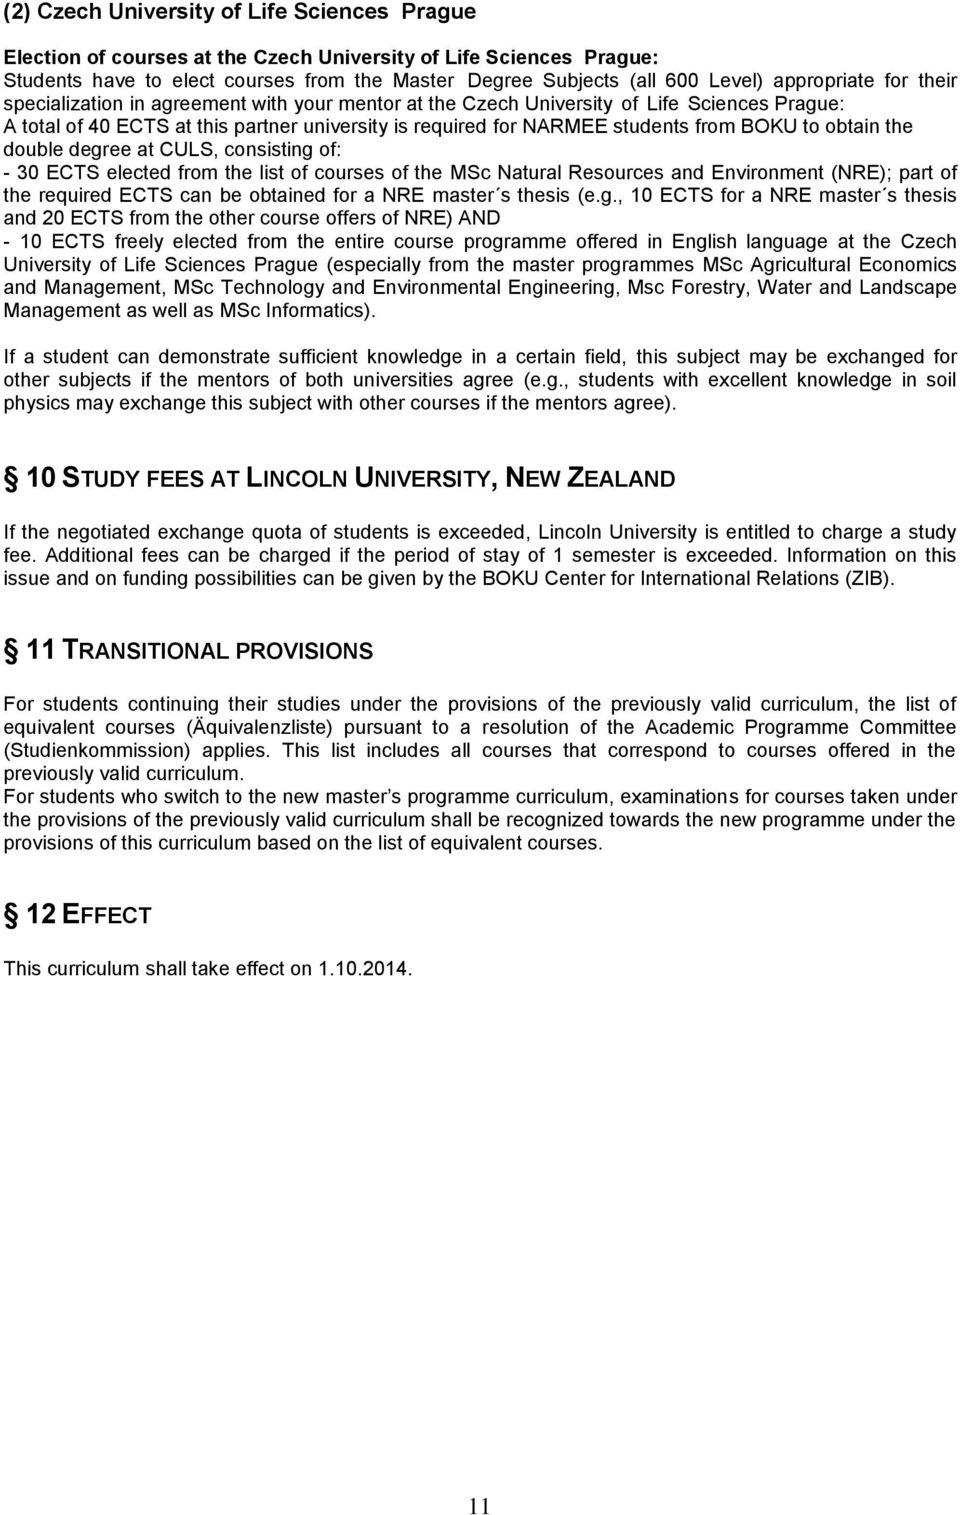 BOKU to obtain the double degree at CULS, consisting of: - 30 ECTS elected from the list of courses of the MSc Natural Resources and Environment (NRE); part of the required ECTS can be obtained for a